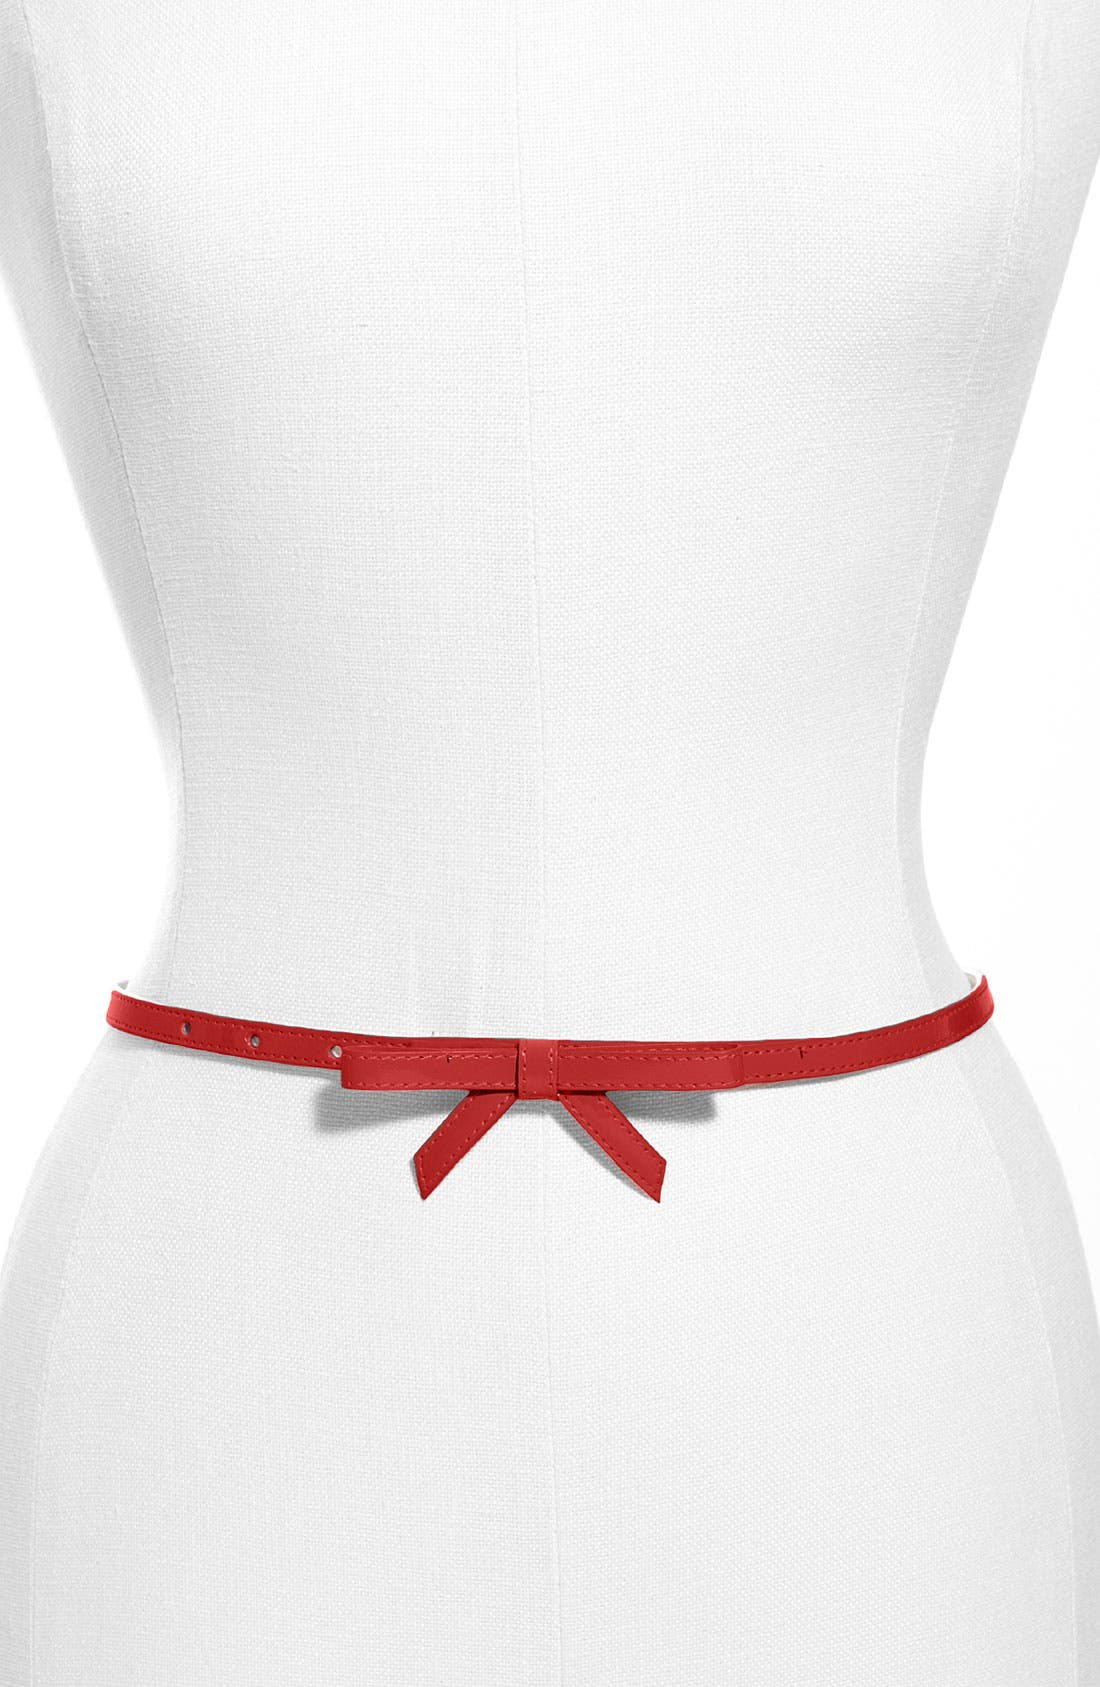 Main Image - Another Line Faux Leather Belt